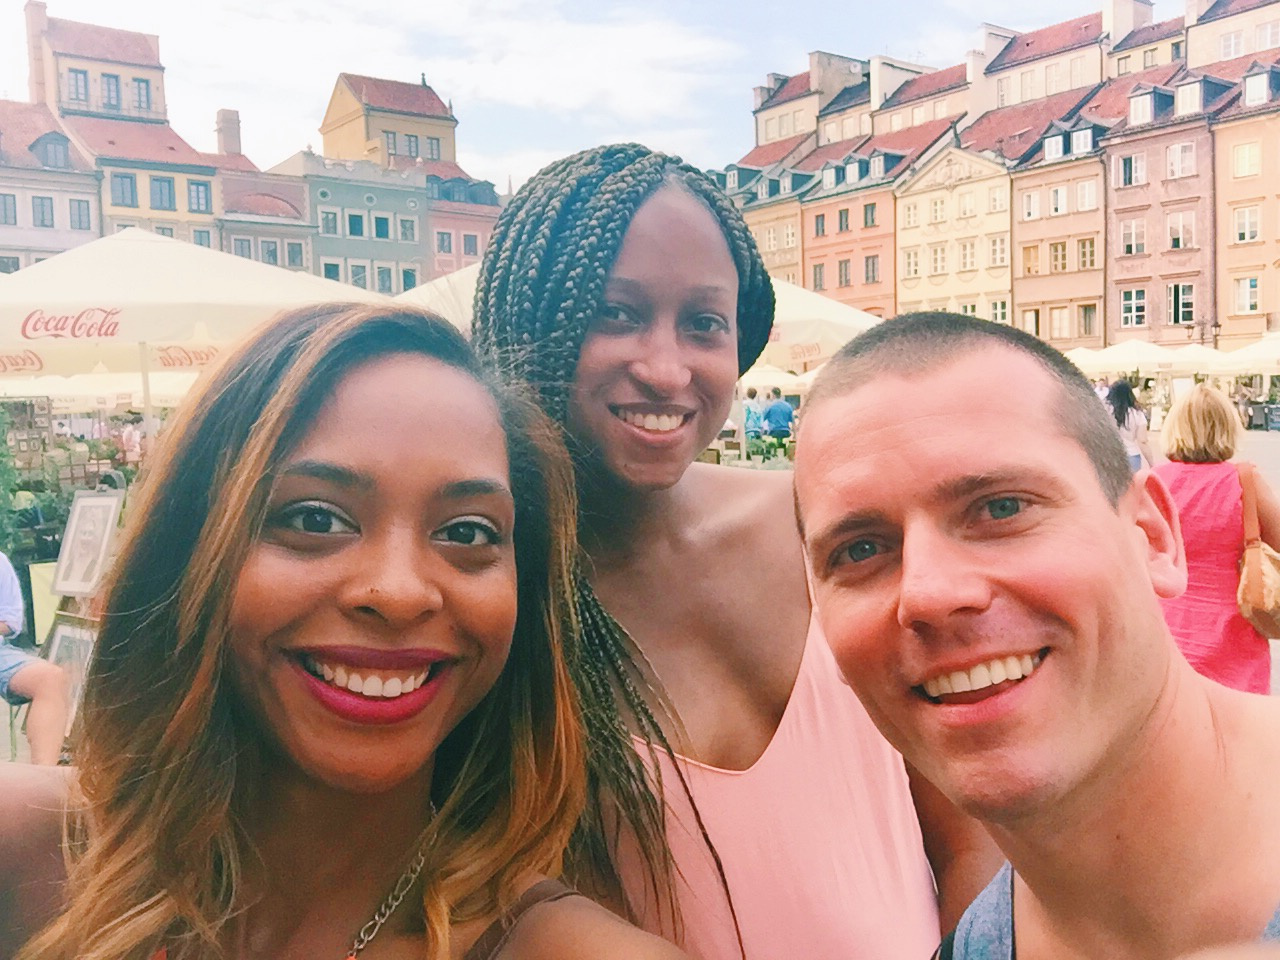 Jewels + Jessica+ Jacek= J-unit! ( We listened to way too much 50 cent in the car). First J-Unit Selfie in Old Town Market Square in Warsaw!